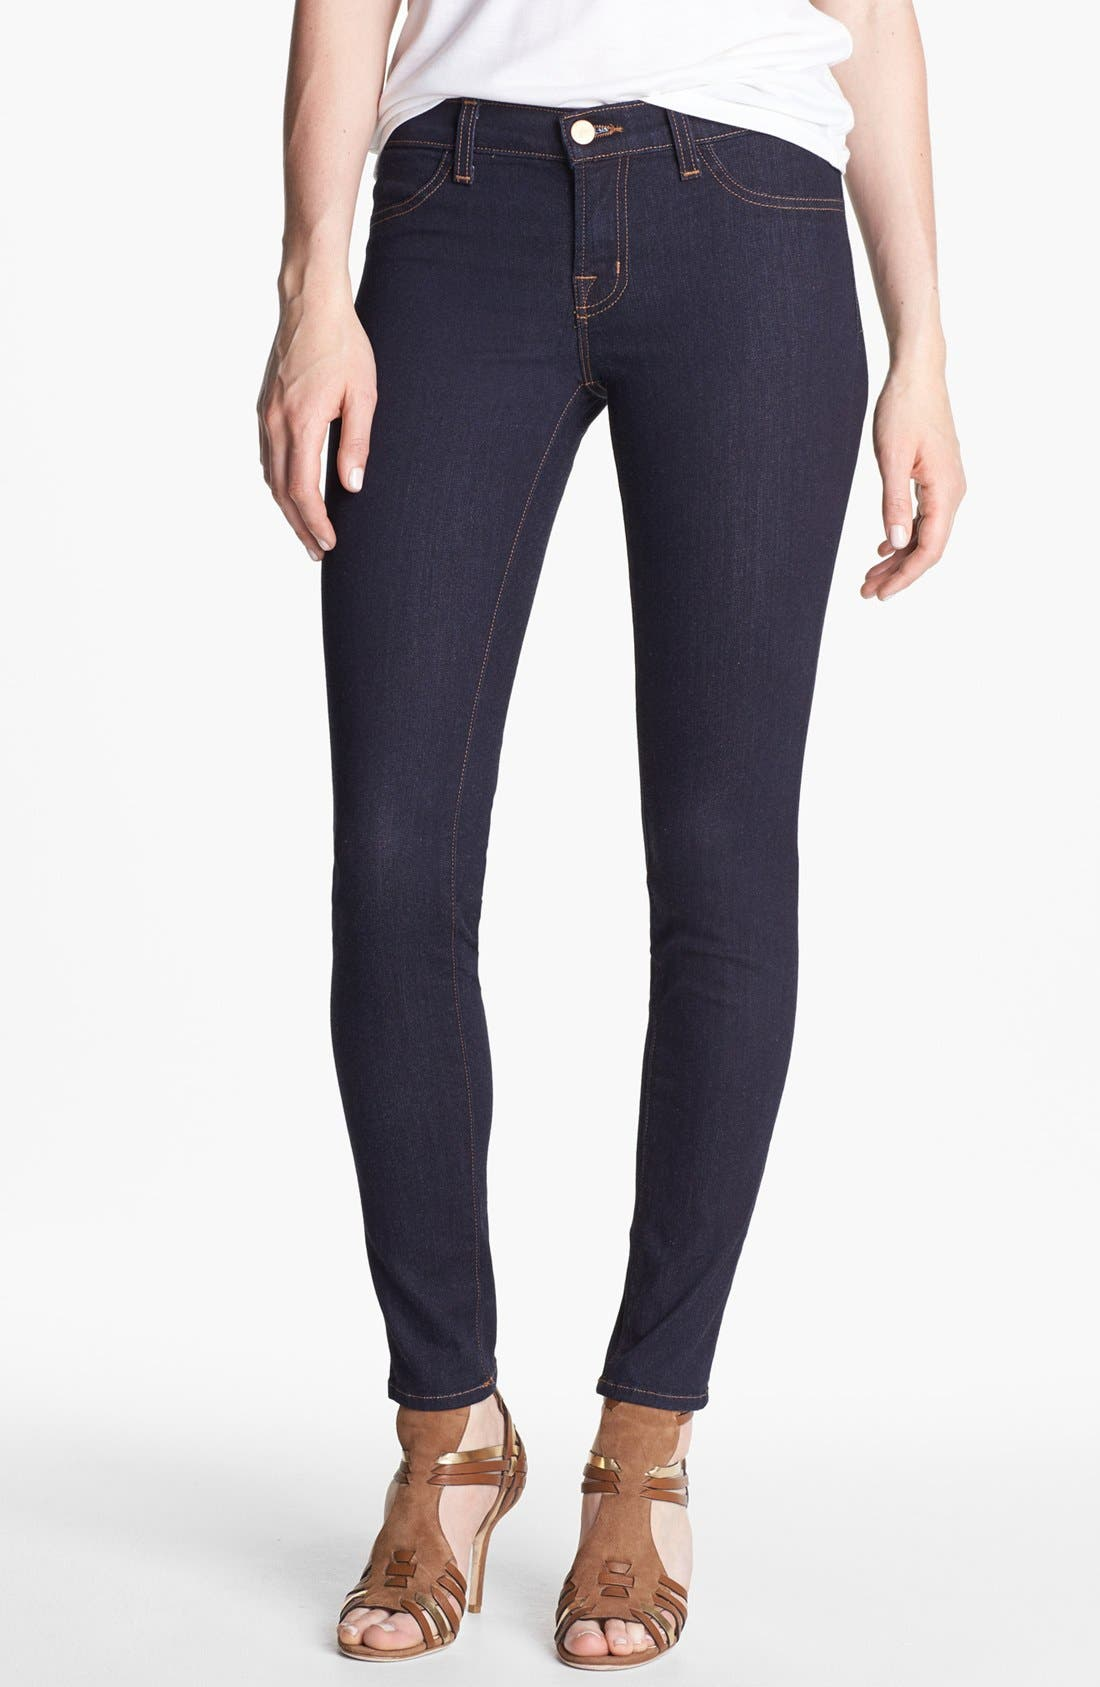 Alternate Image 1 Selected - J Brand '901' Stretch Denim Leggings (Starless Wash)